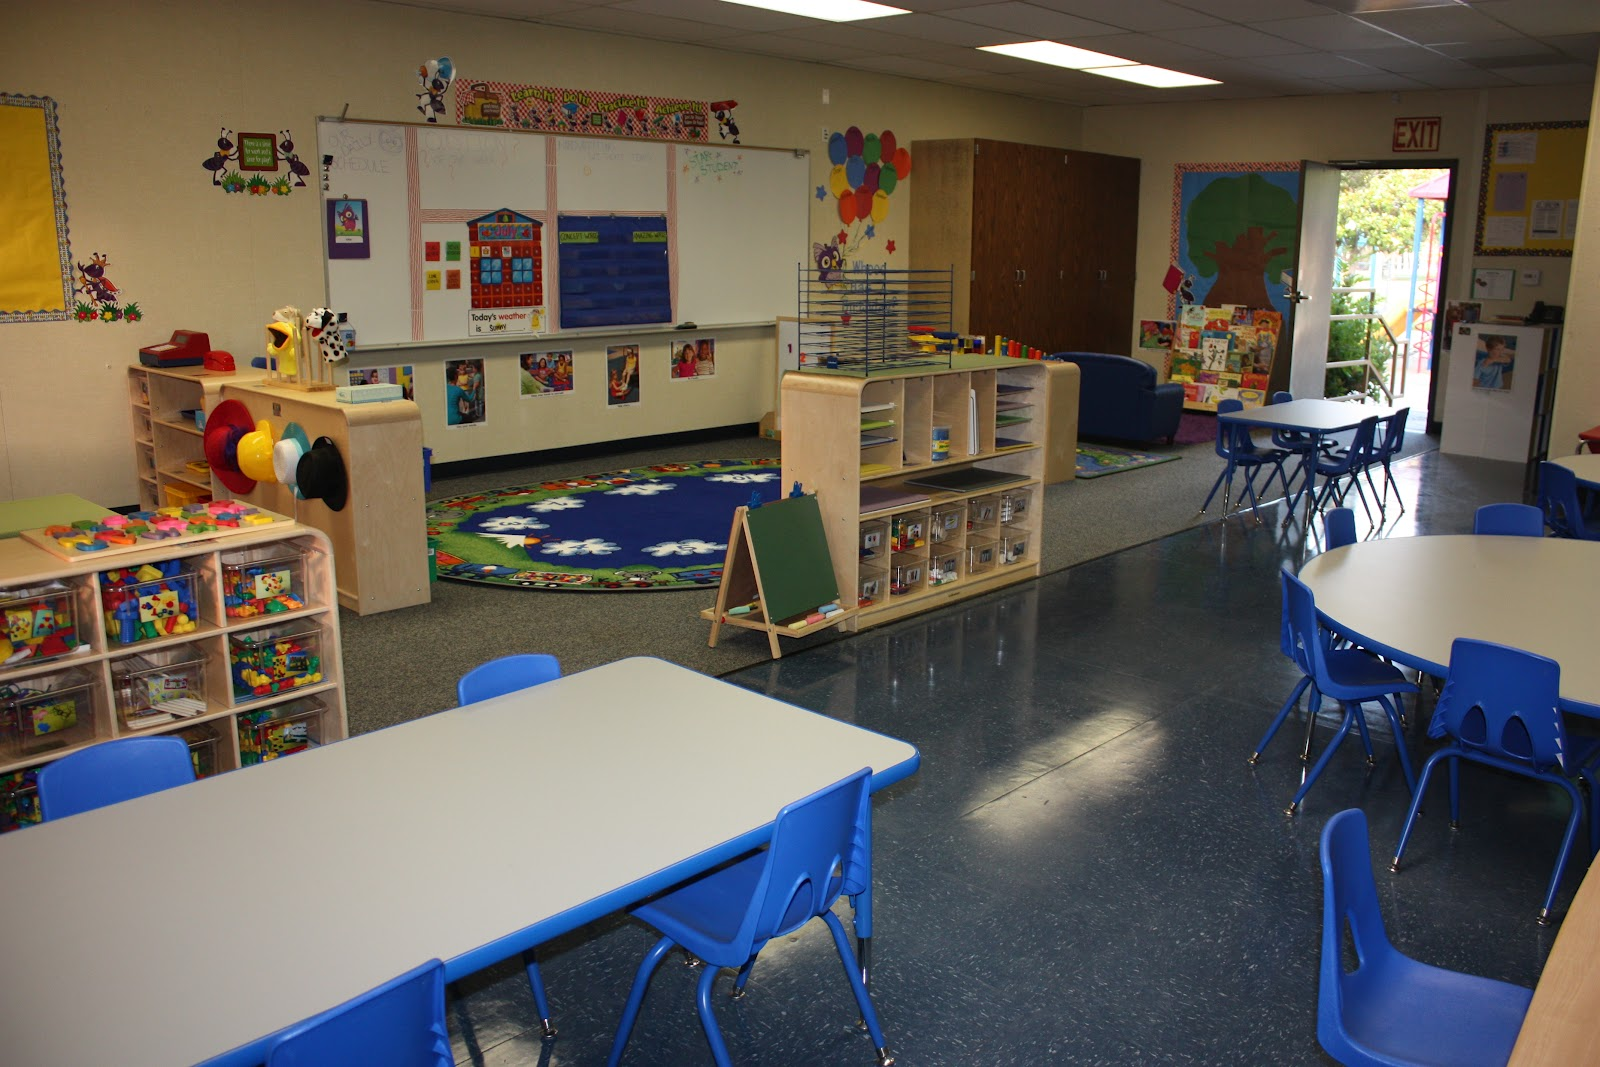 What kind of layout should a preschool classroom have?